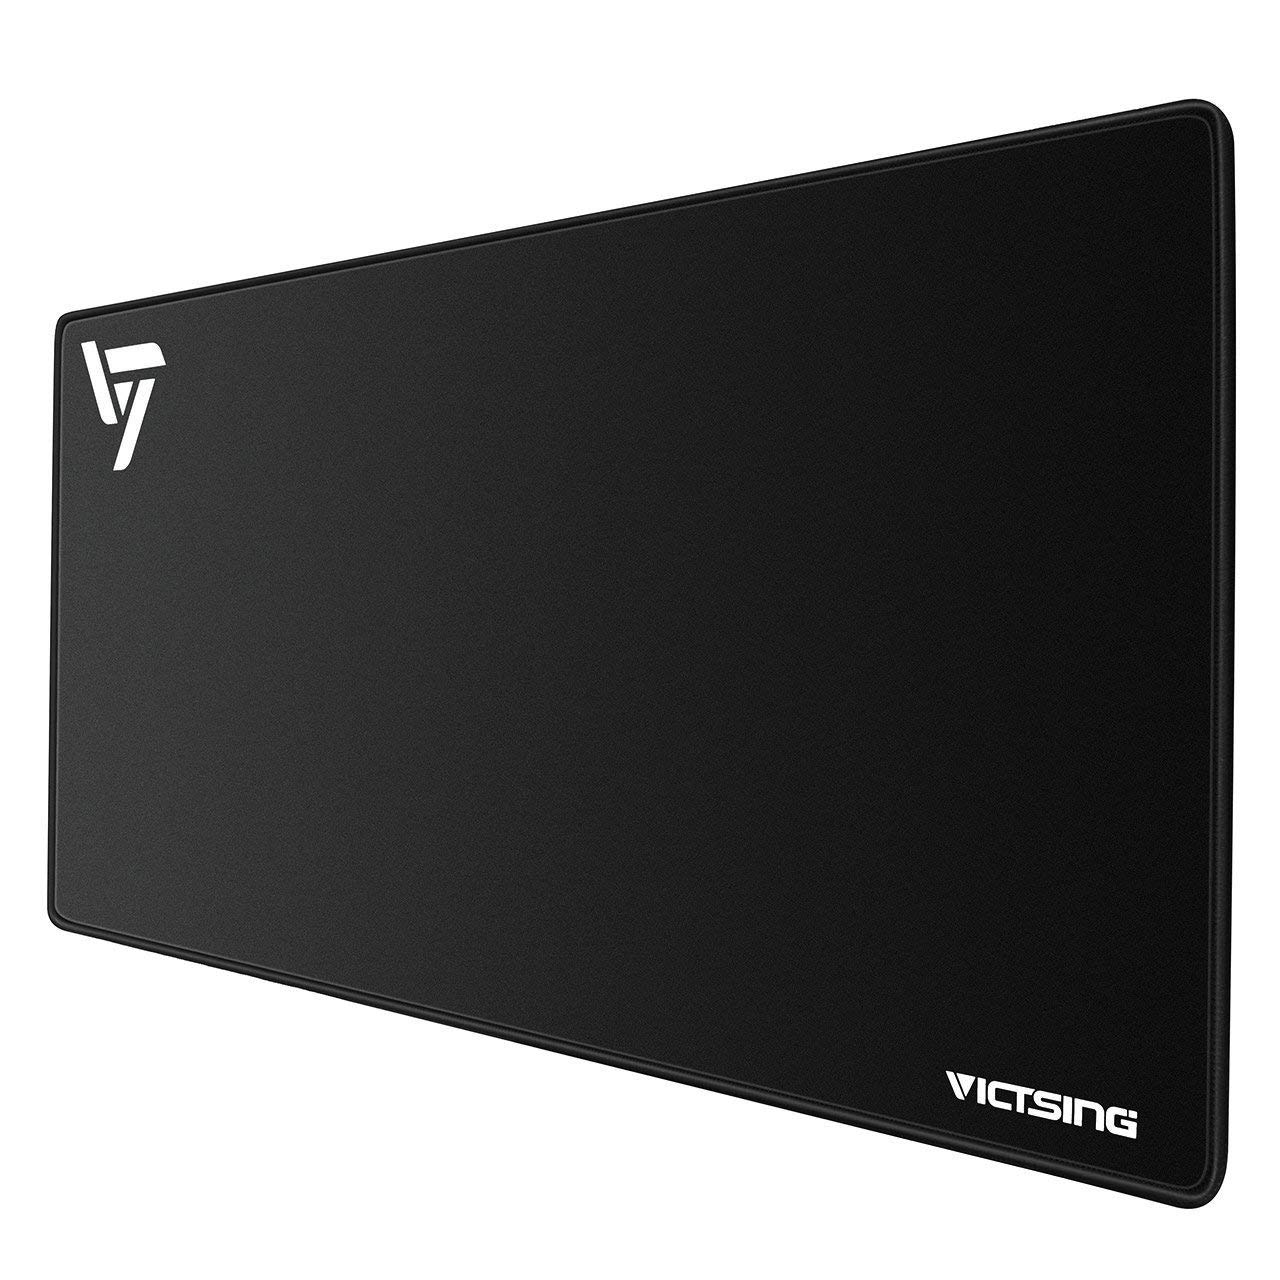 VicTsing Extended Gaming Mouse Pad, Thick Large (31.5×15.75×0.08 inch) Computer Keyboard Mousepad Mouse Mat, Water-Resistant, Non-Slip Base, Durable Stitched Edges, Ideal for Both Gaming